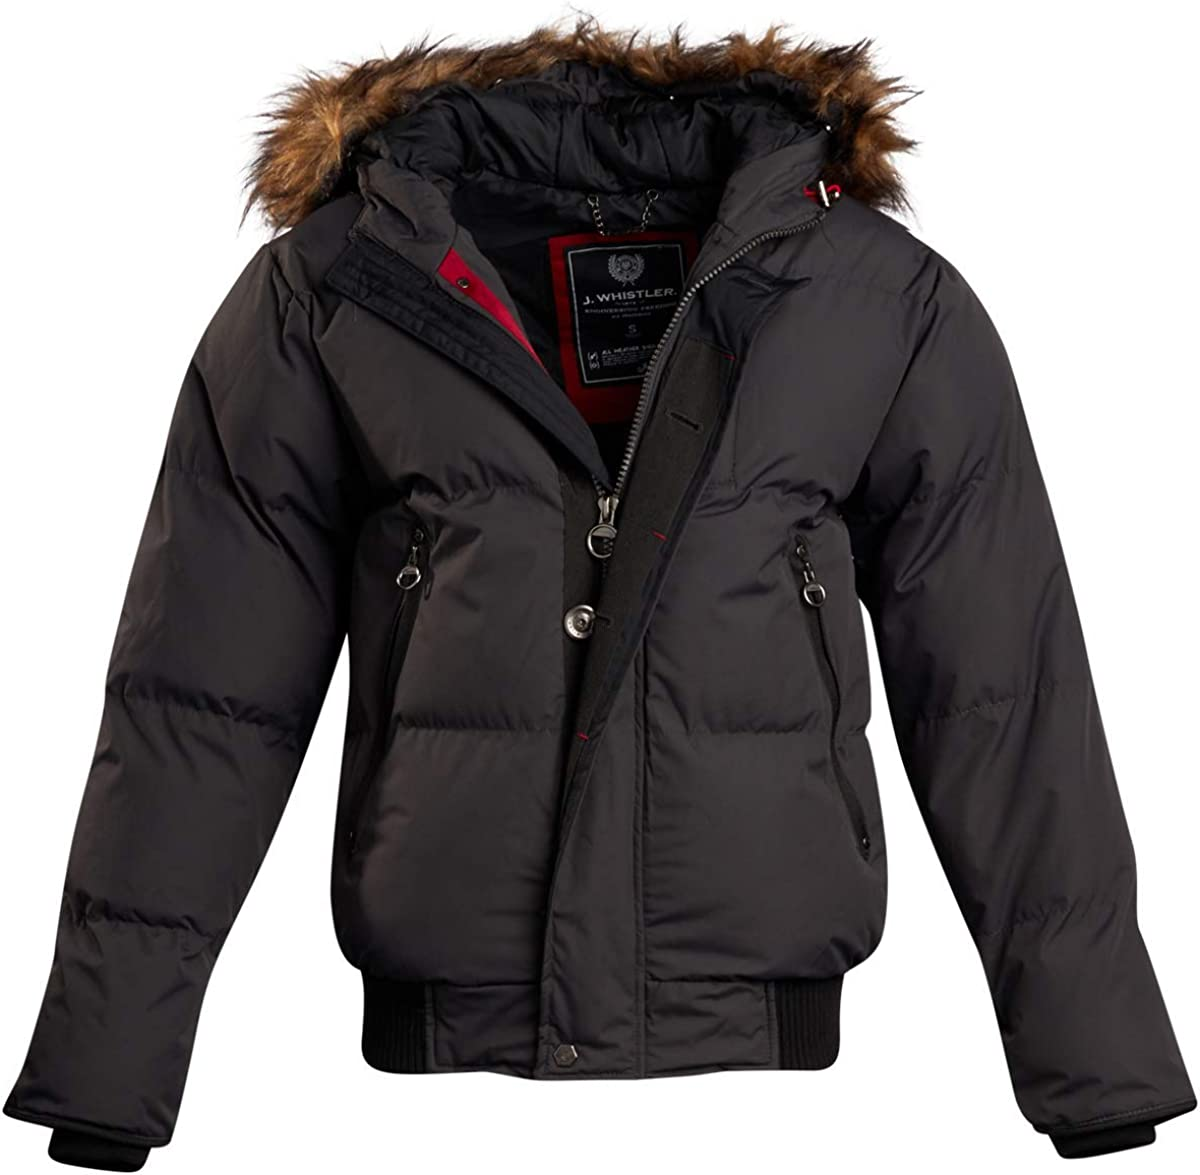 J. Whistler Men's Quilted Insulated Puffer Jacket with Hood